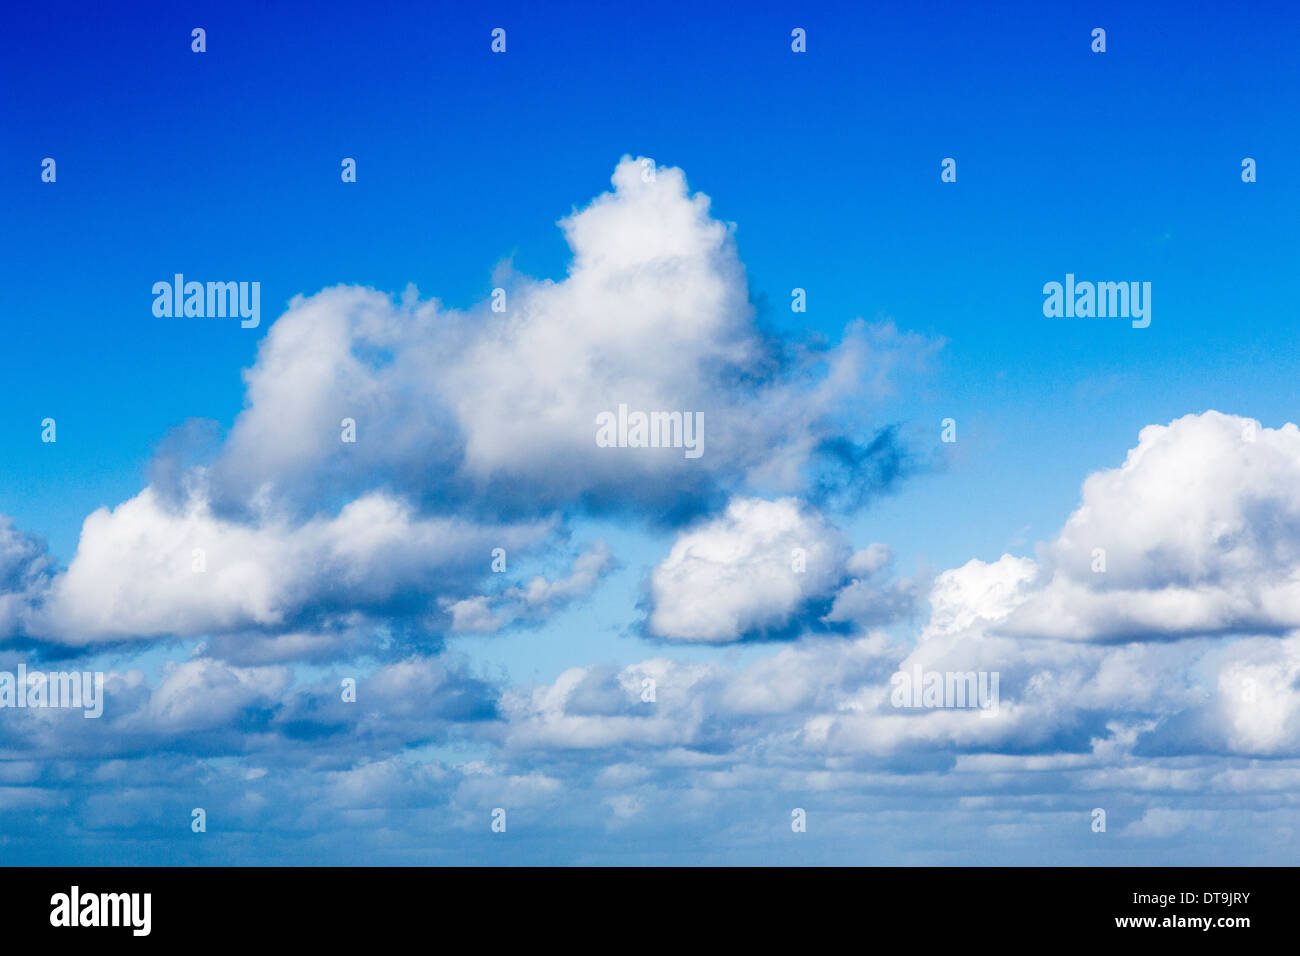 White fluffy cumulus clouds with flat bases in an azure blue sky over the south of England - Stock Image